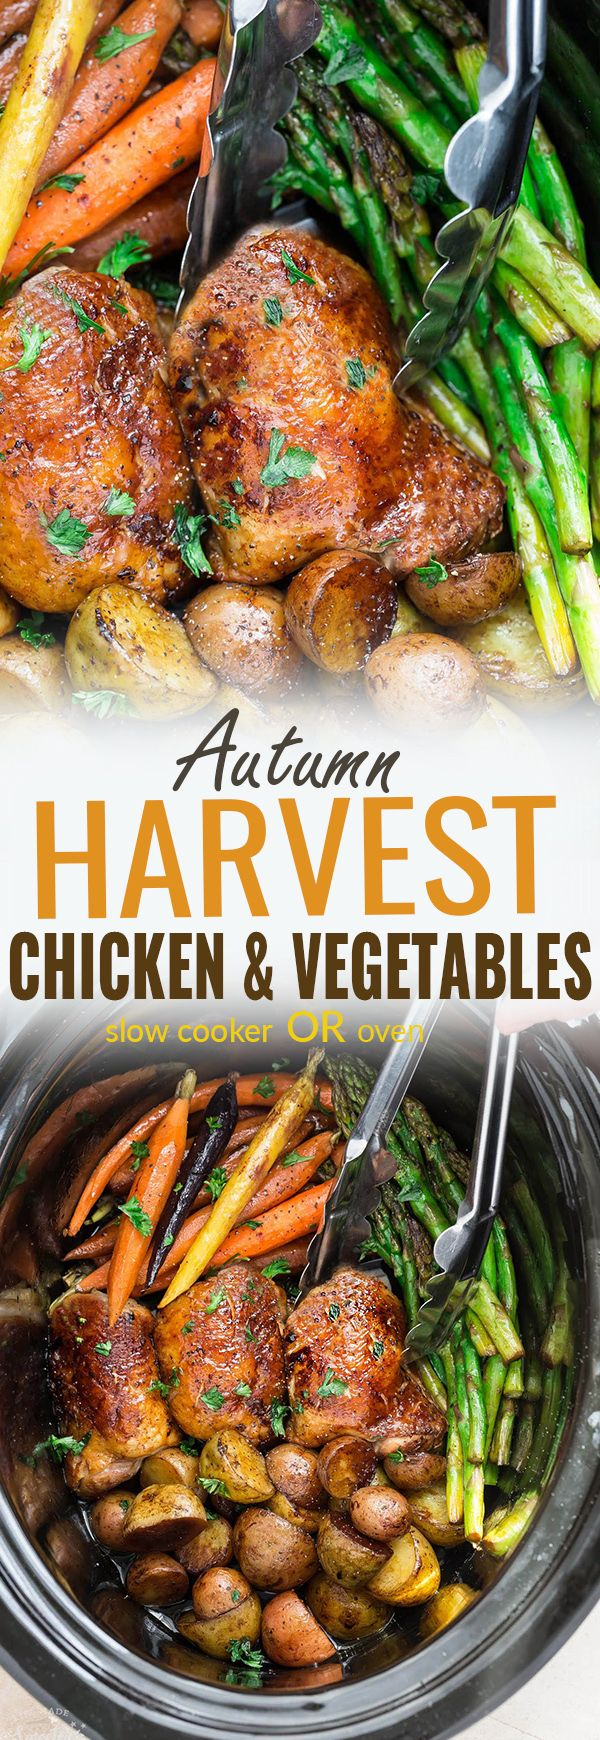 This recipe for Slow Cooker or Oven Harvest Chicken and Autumn Vegetables is an easy set and forget meal that's perfect for busy fall weeknights. Best of all, this all in meal is easy to customize and made with tender and juicy chicken, flavorful herbs and hearty fall vegetables. So easy to make in one pan with less than 15 minutes of prep time. Great for a fuss-free Thanksgiving dinner for two. #slowcooker #fall #chicken #vegetables #crockpot #onepot